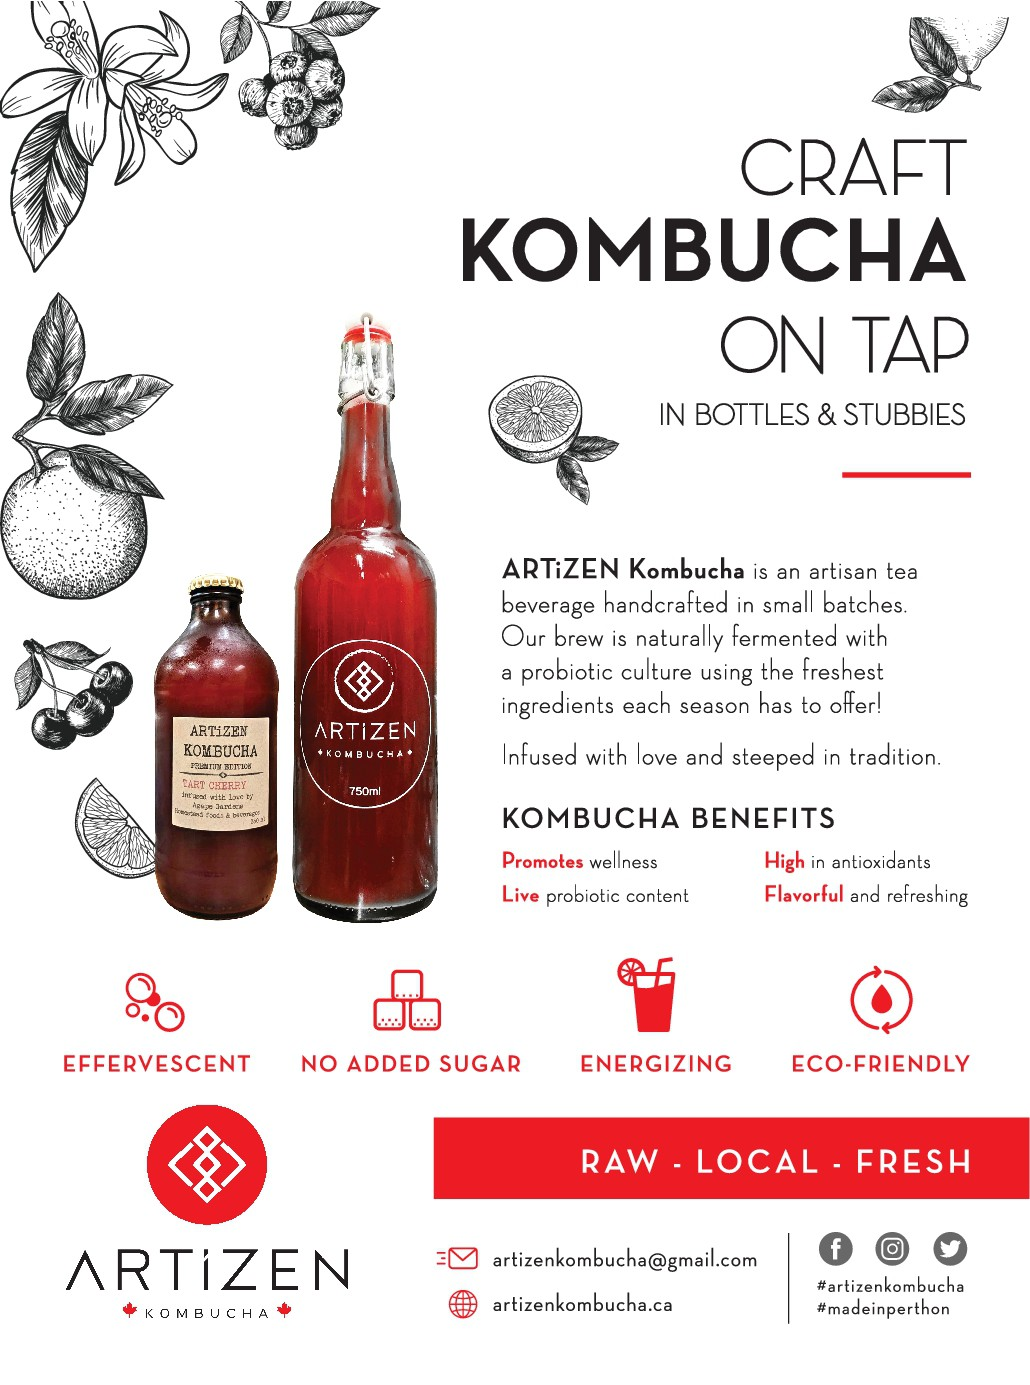 Simple, clean signage for ARTIZEN Kombucha On Tap